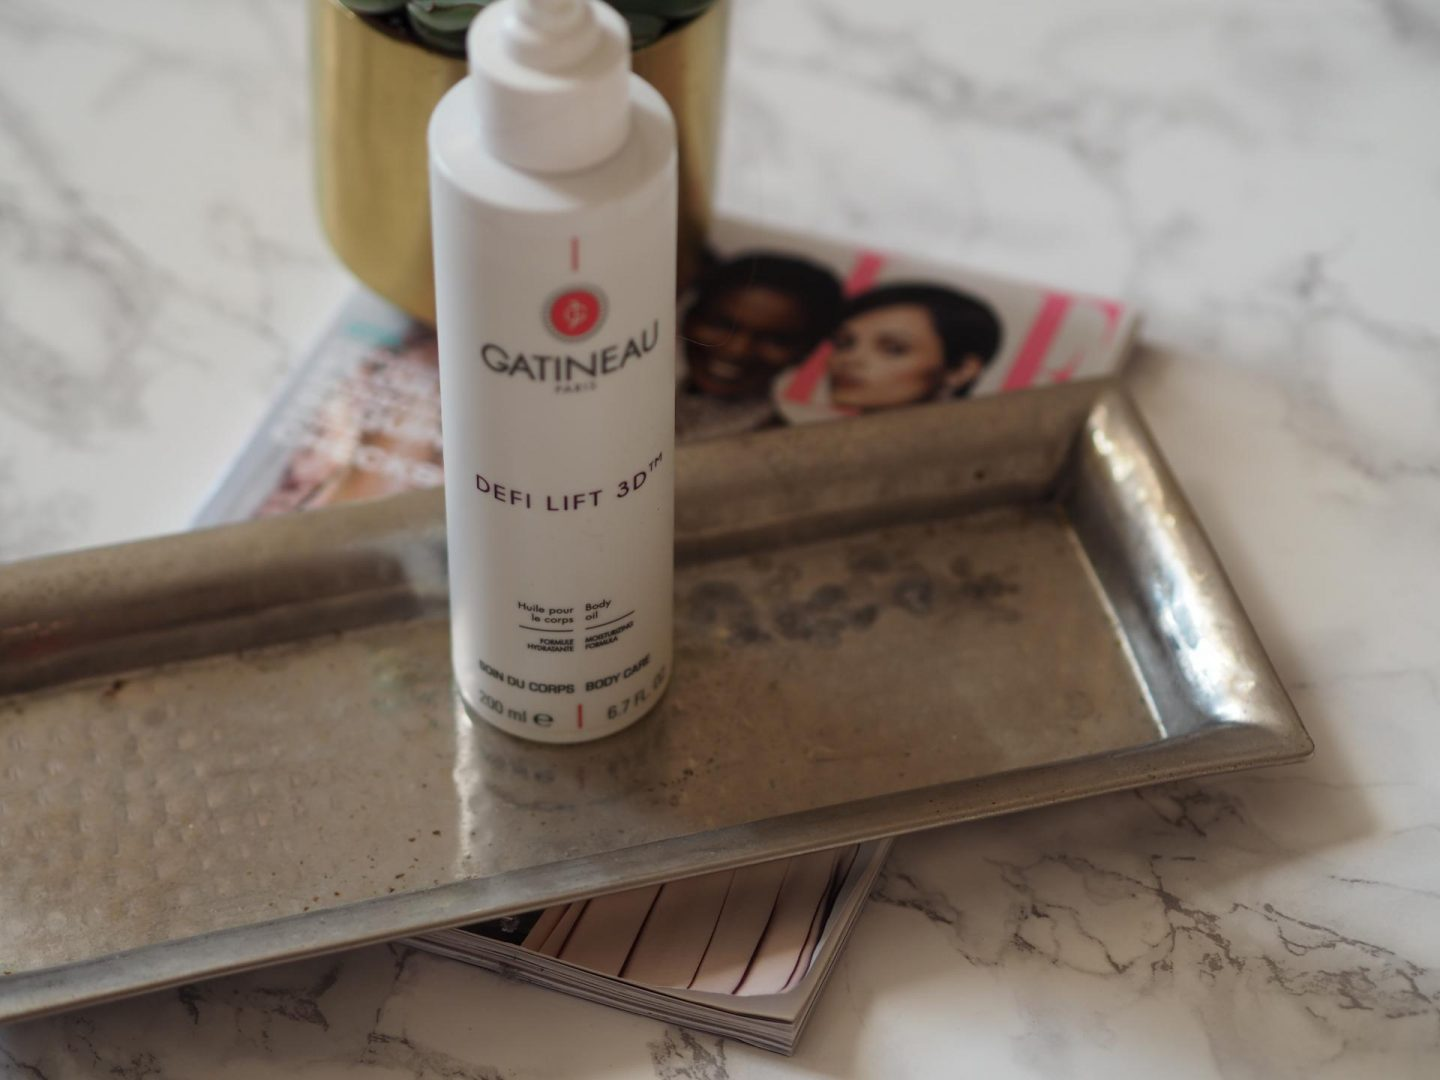 Luxe Beauty Buys - Product: Gatineau Defi Lift 3D Body Oil